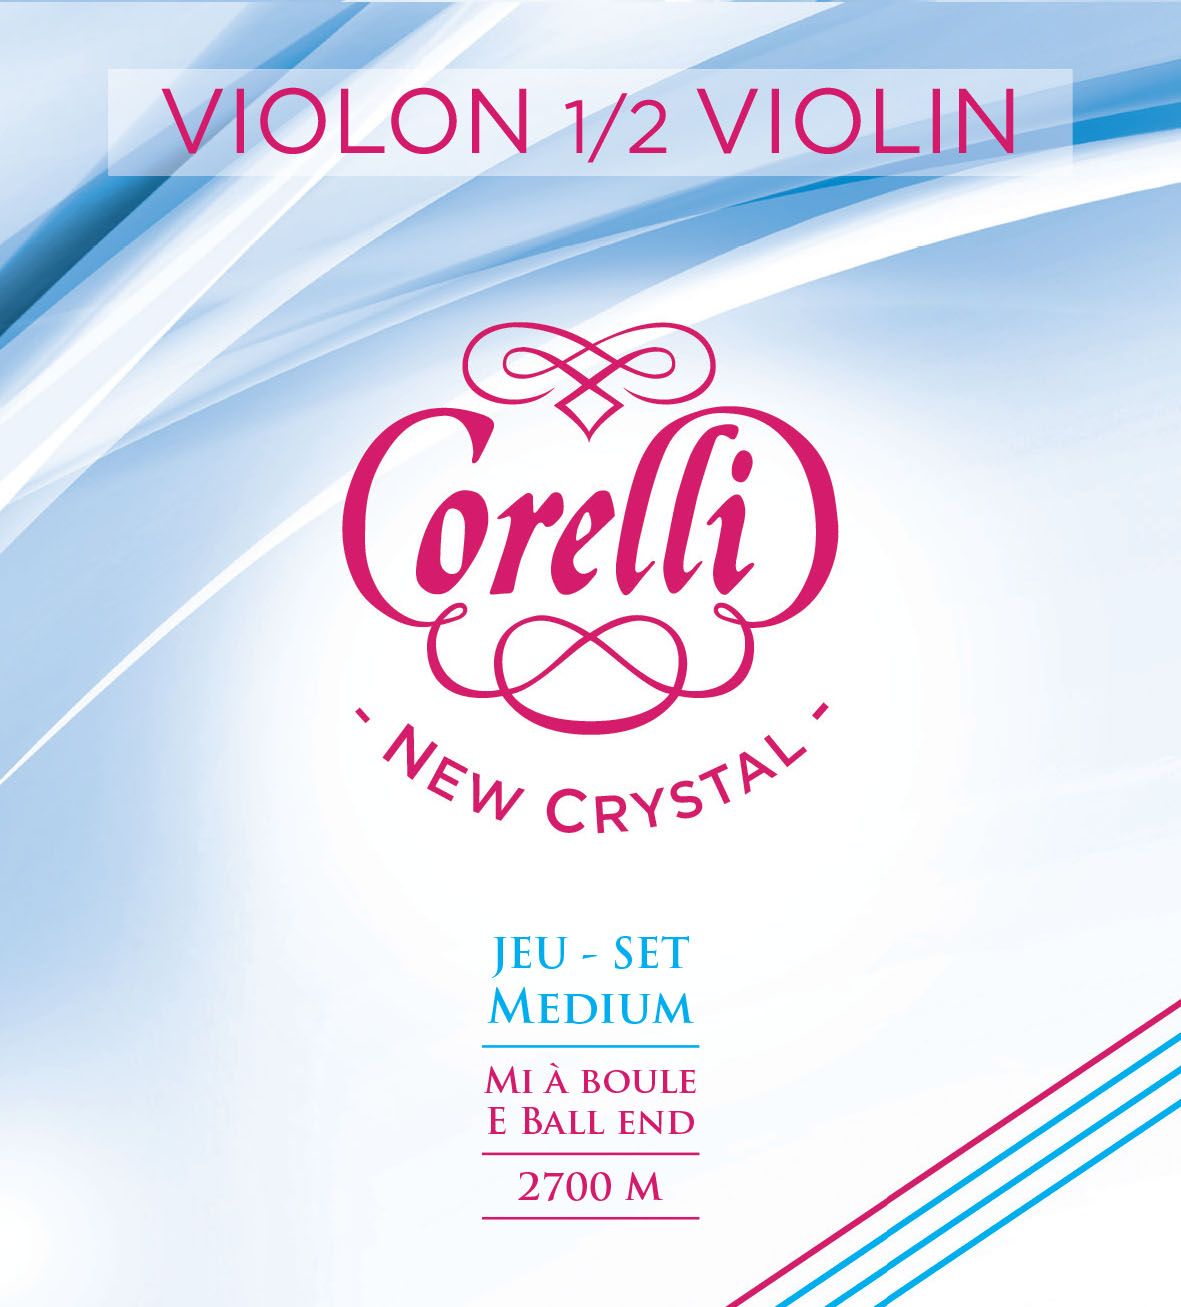 CORELLI NEW CRYSTAL MEDIUM 2700M VIOLIN 1/2